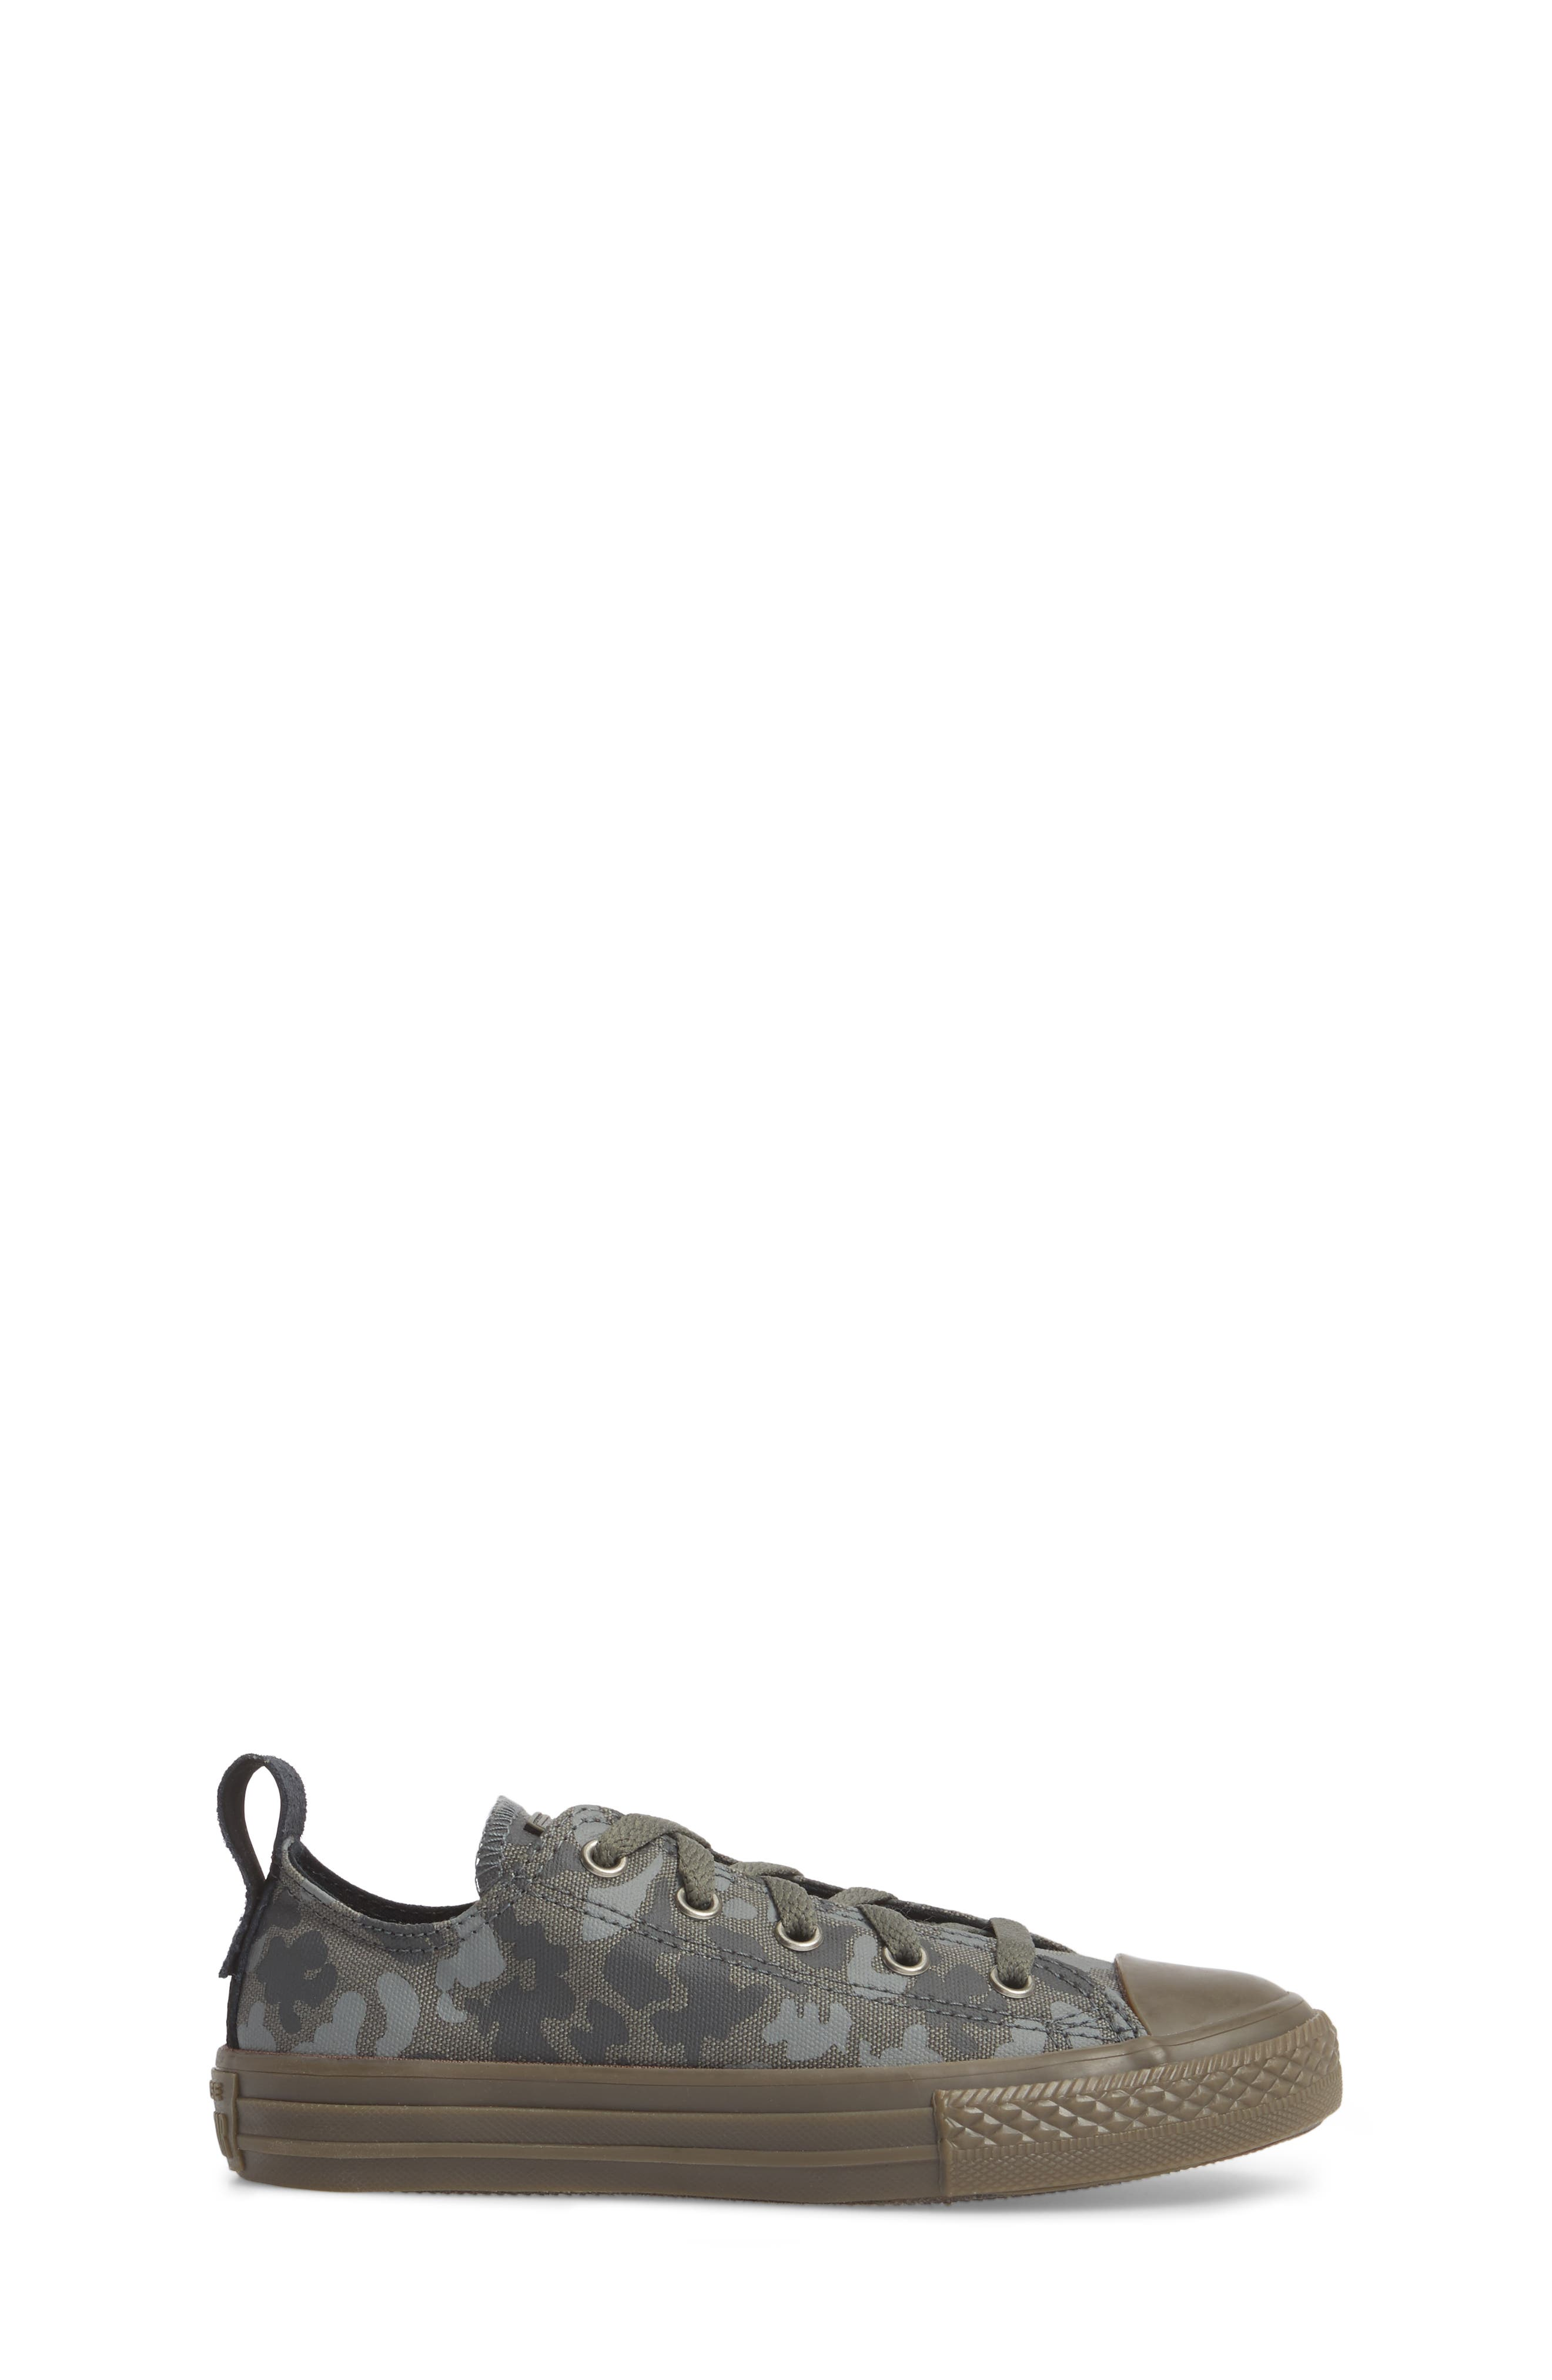 Chuck Taylor<sup>®</sup> All Star<sup>®</sup> Camo Ox Low Top Sneaker,                             Alternate thumbnail 3, color,                             022